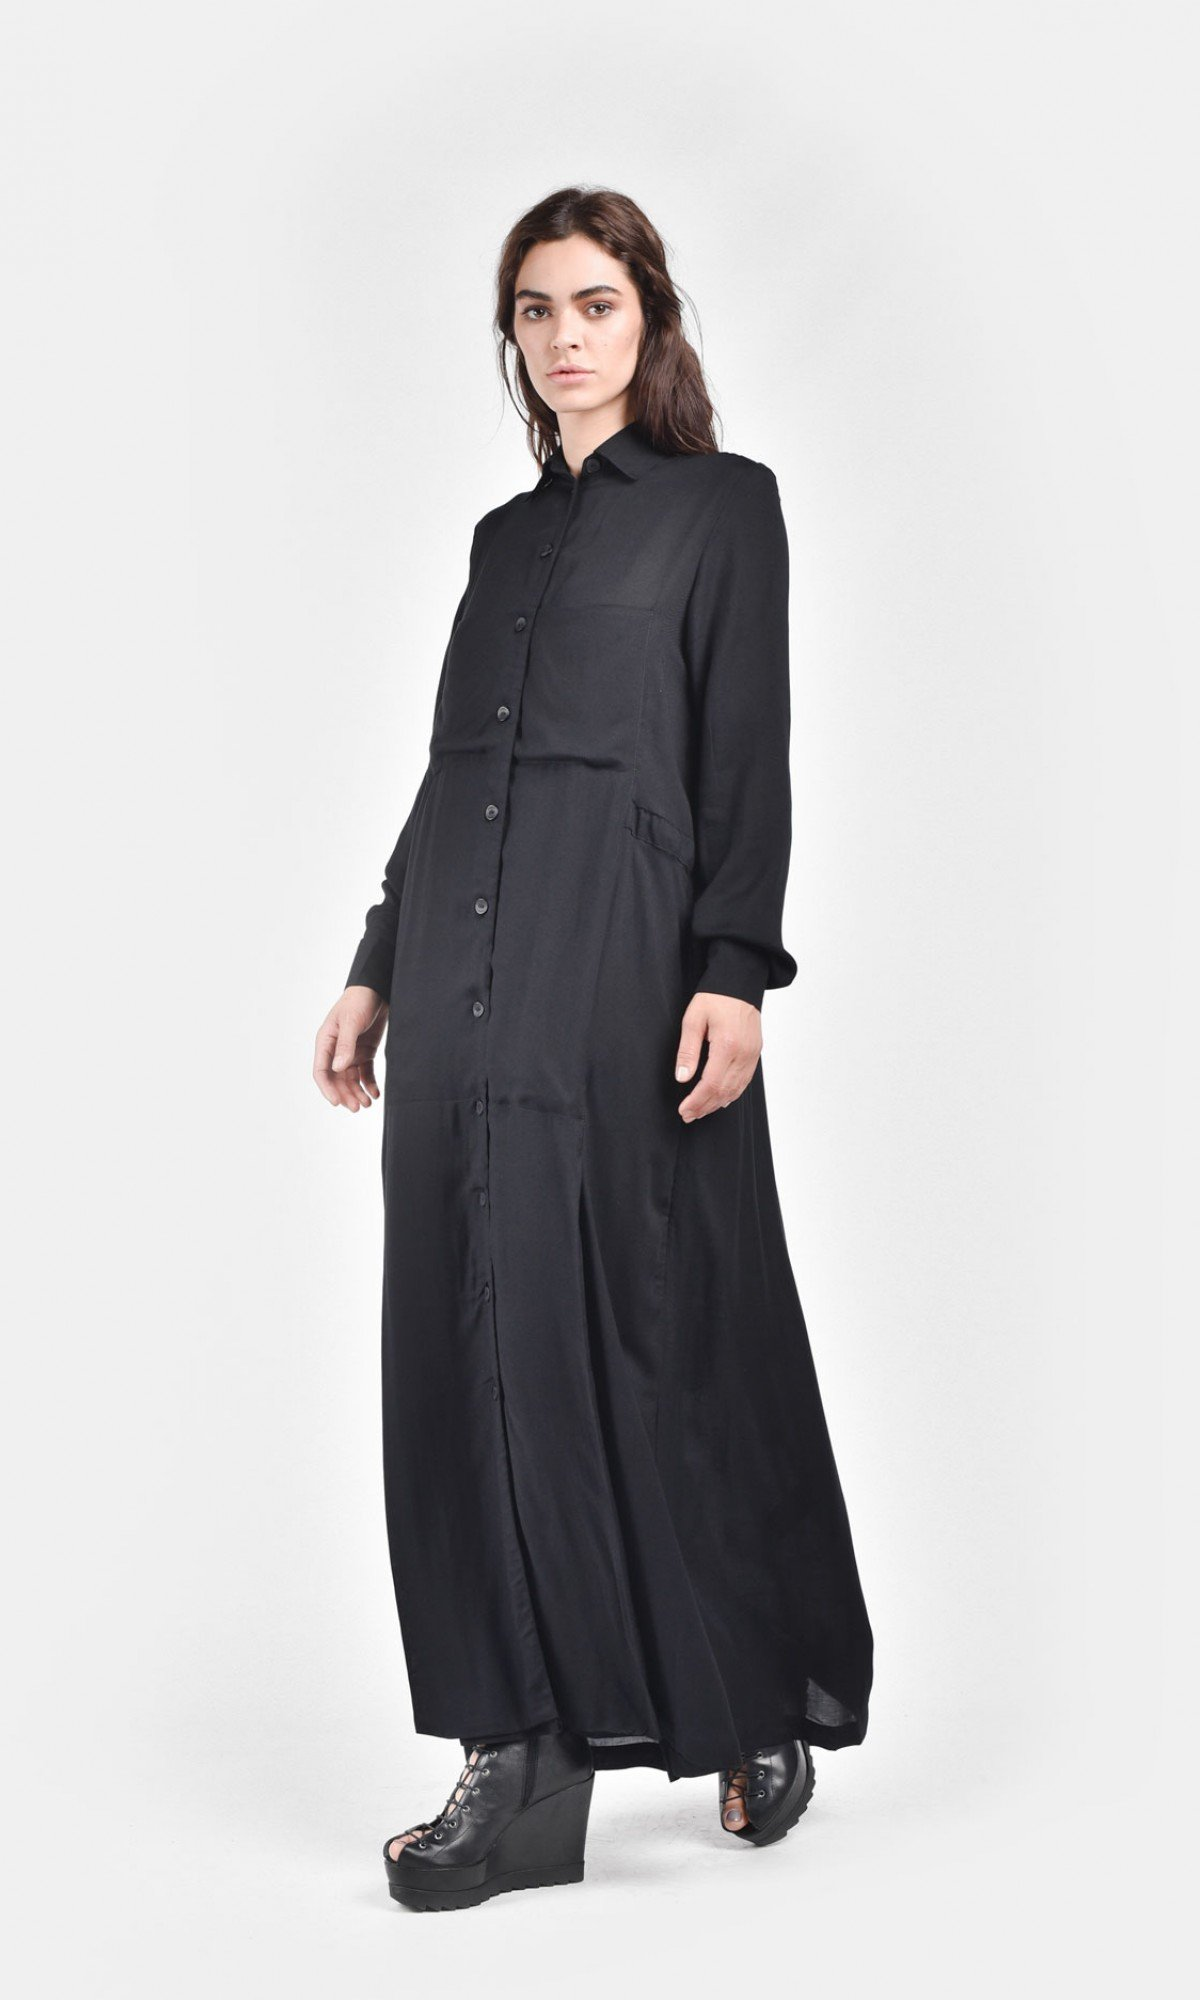 Black Maxi Dress with Side Pockets A03333